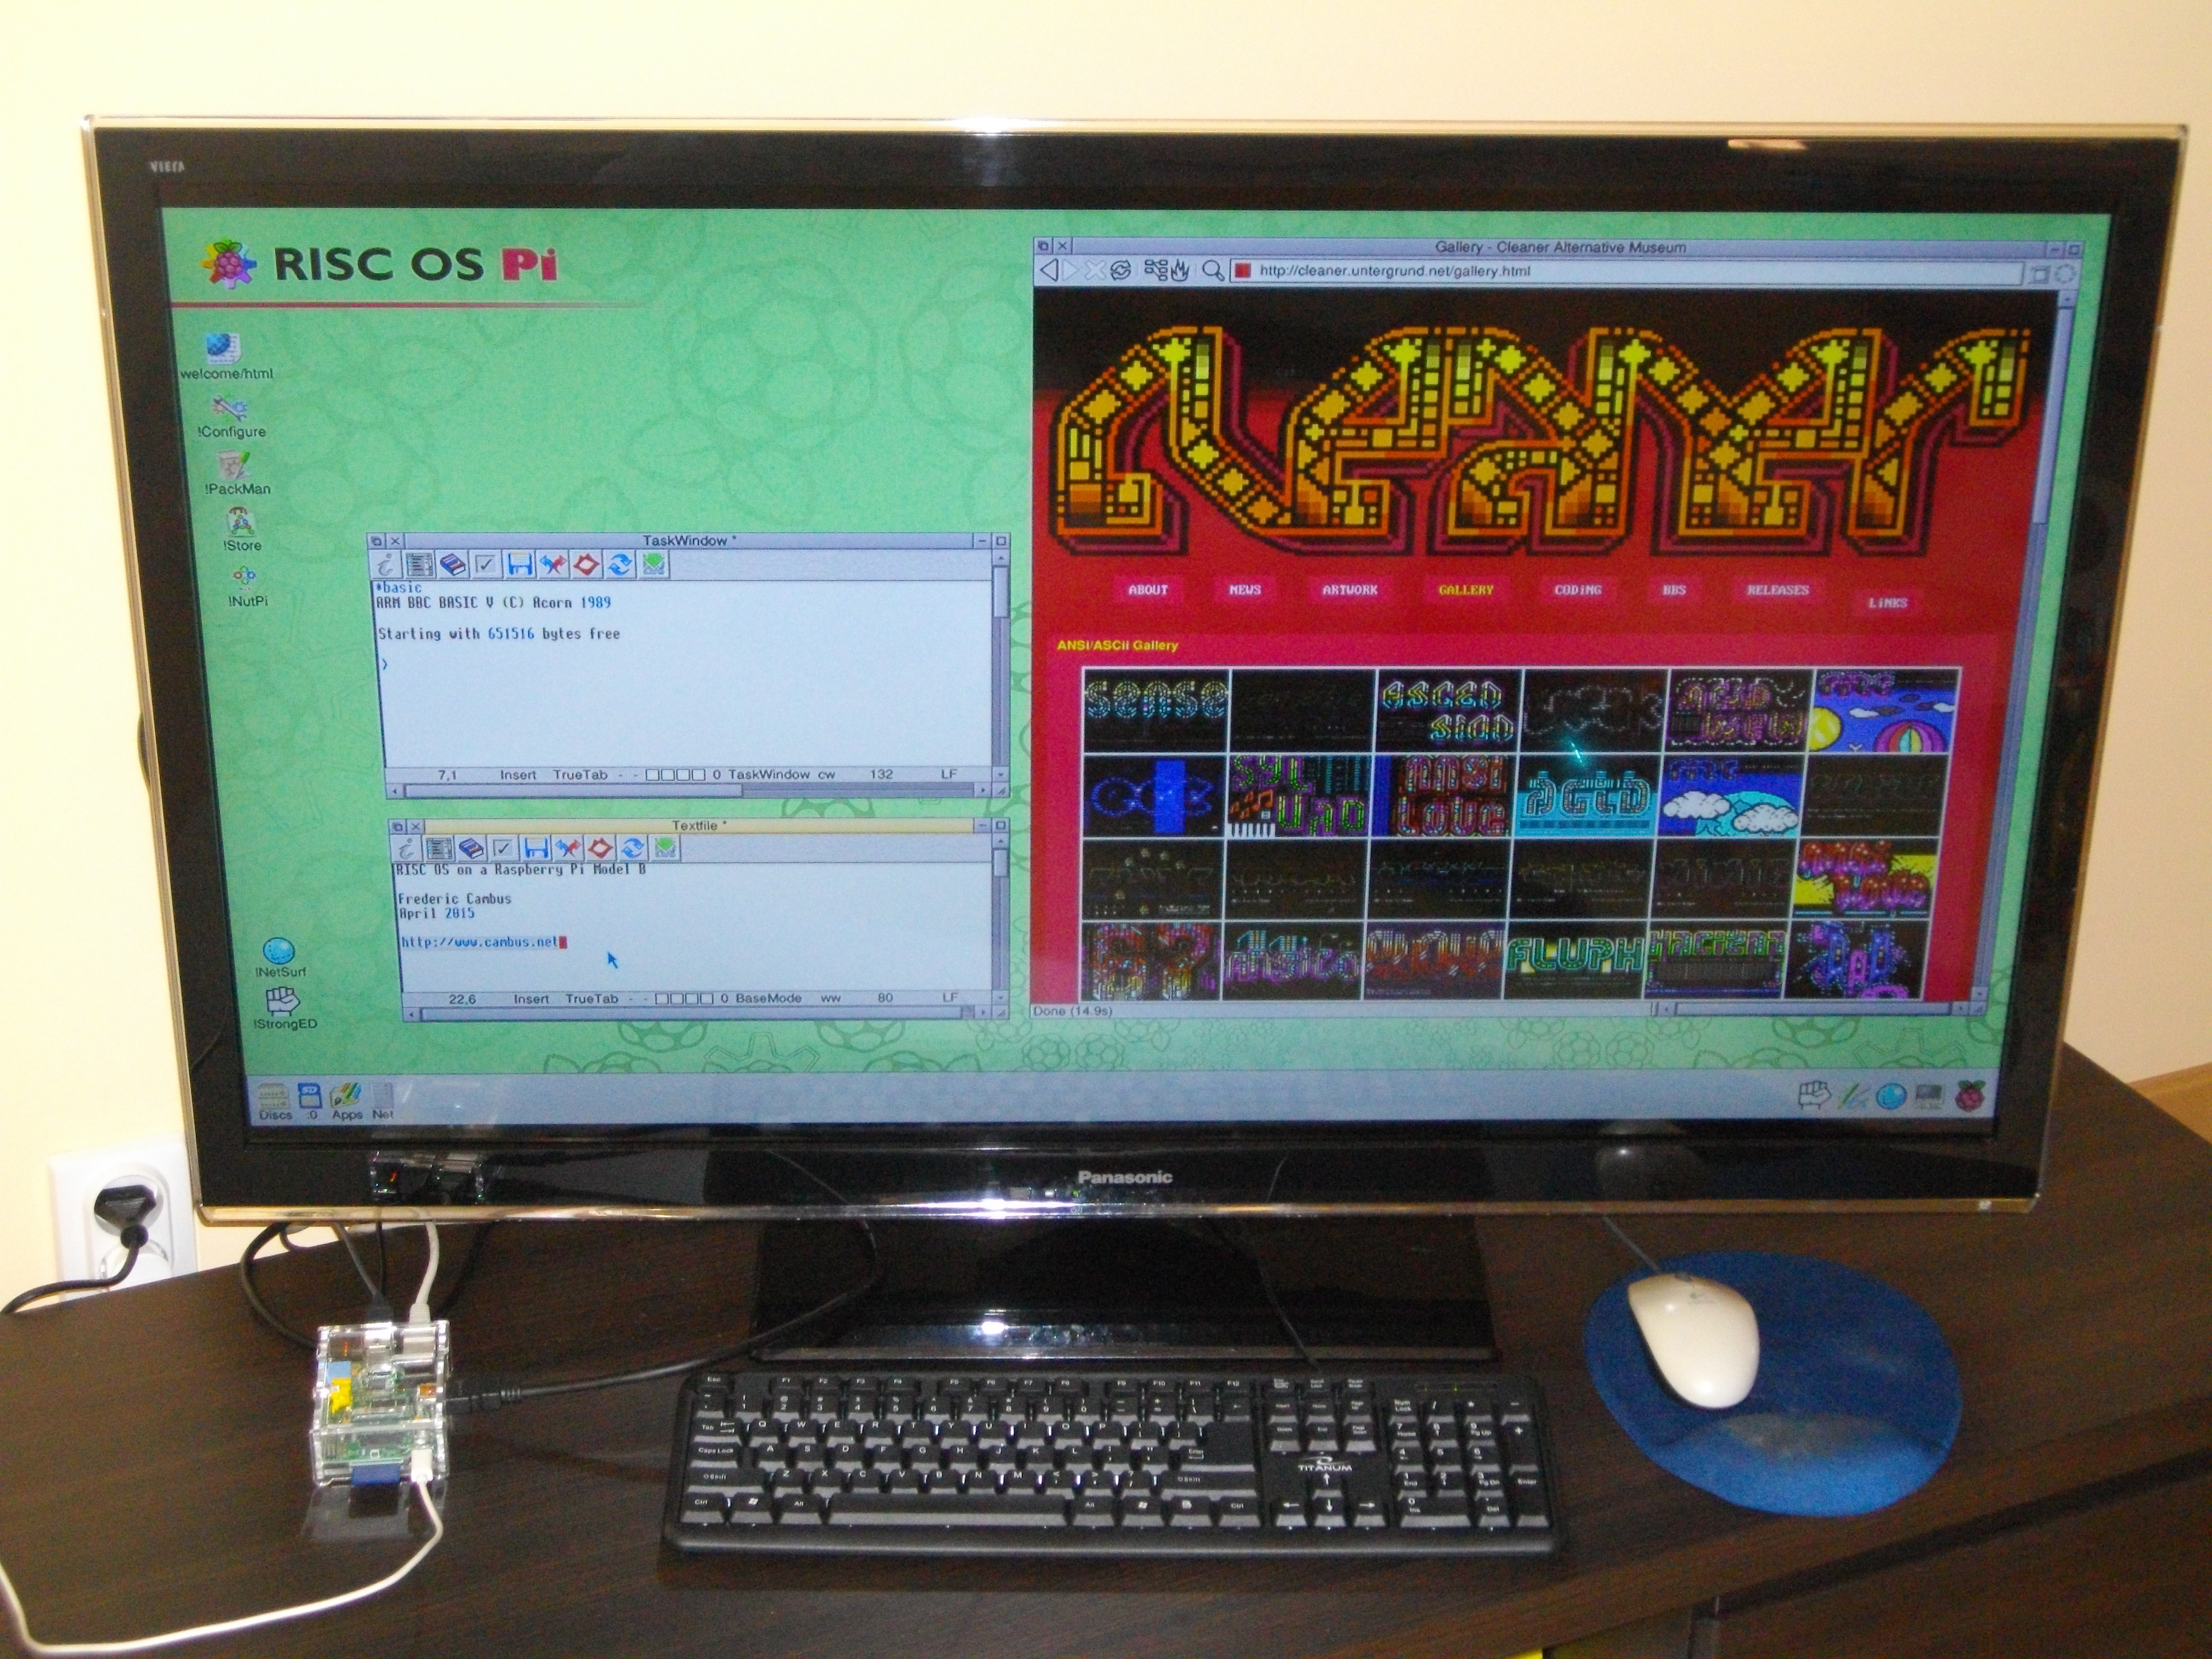 RISC OS in full glory on a 42 inches Panasonic TV in 1080p